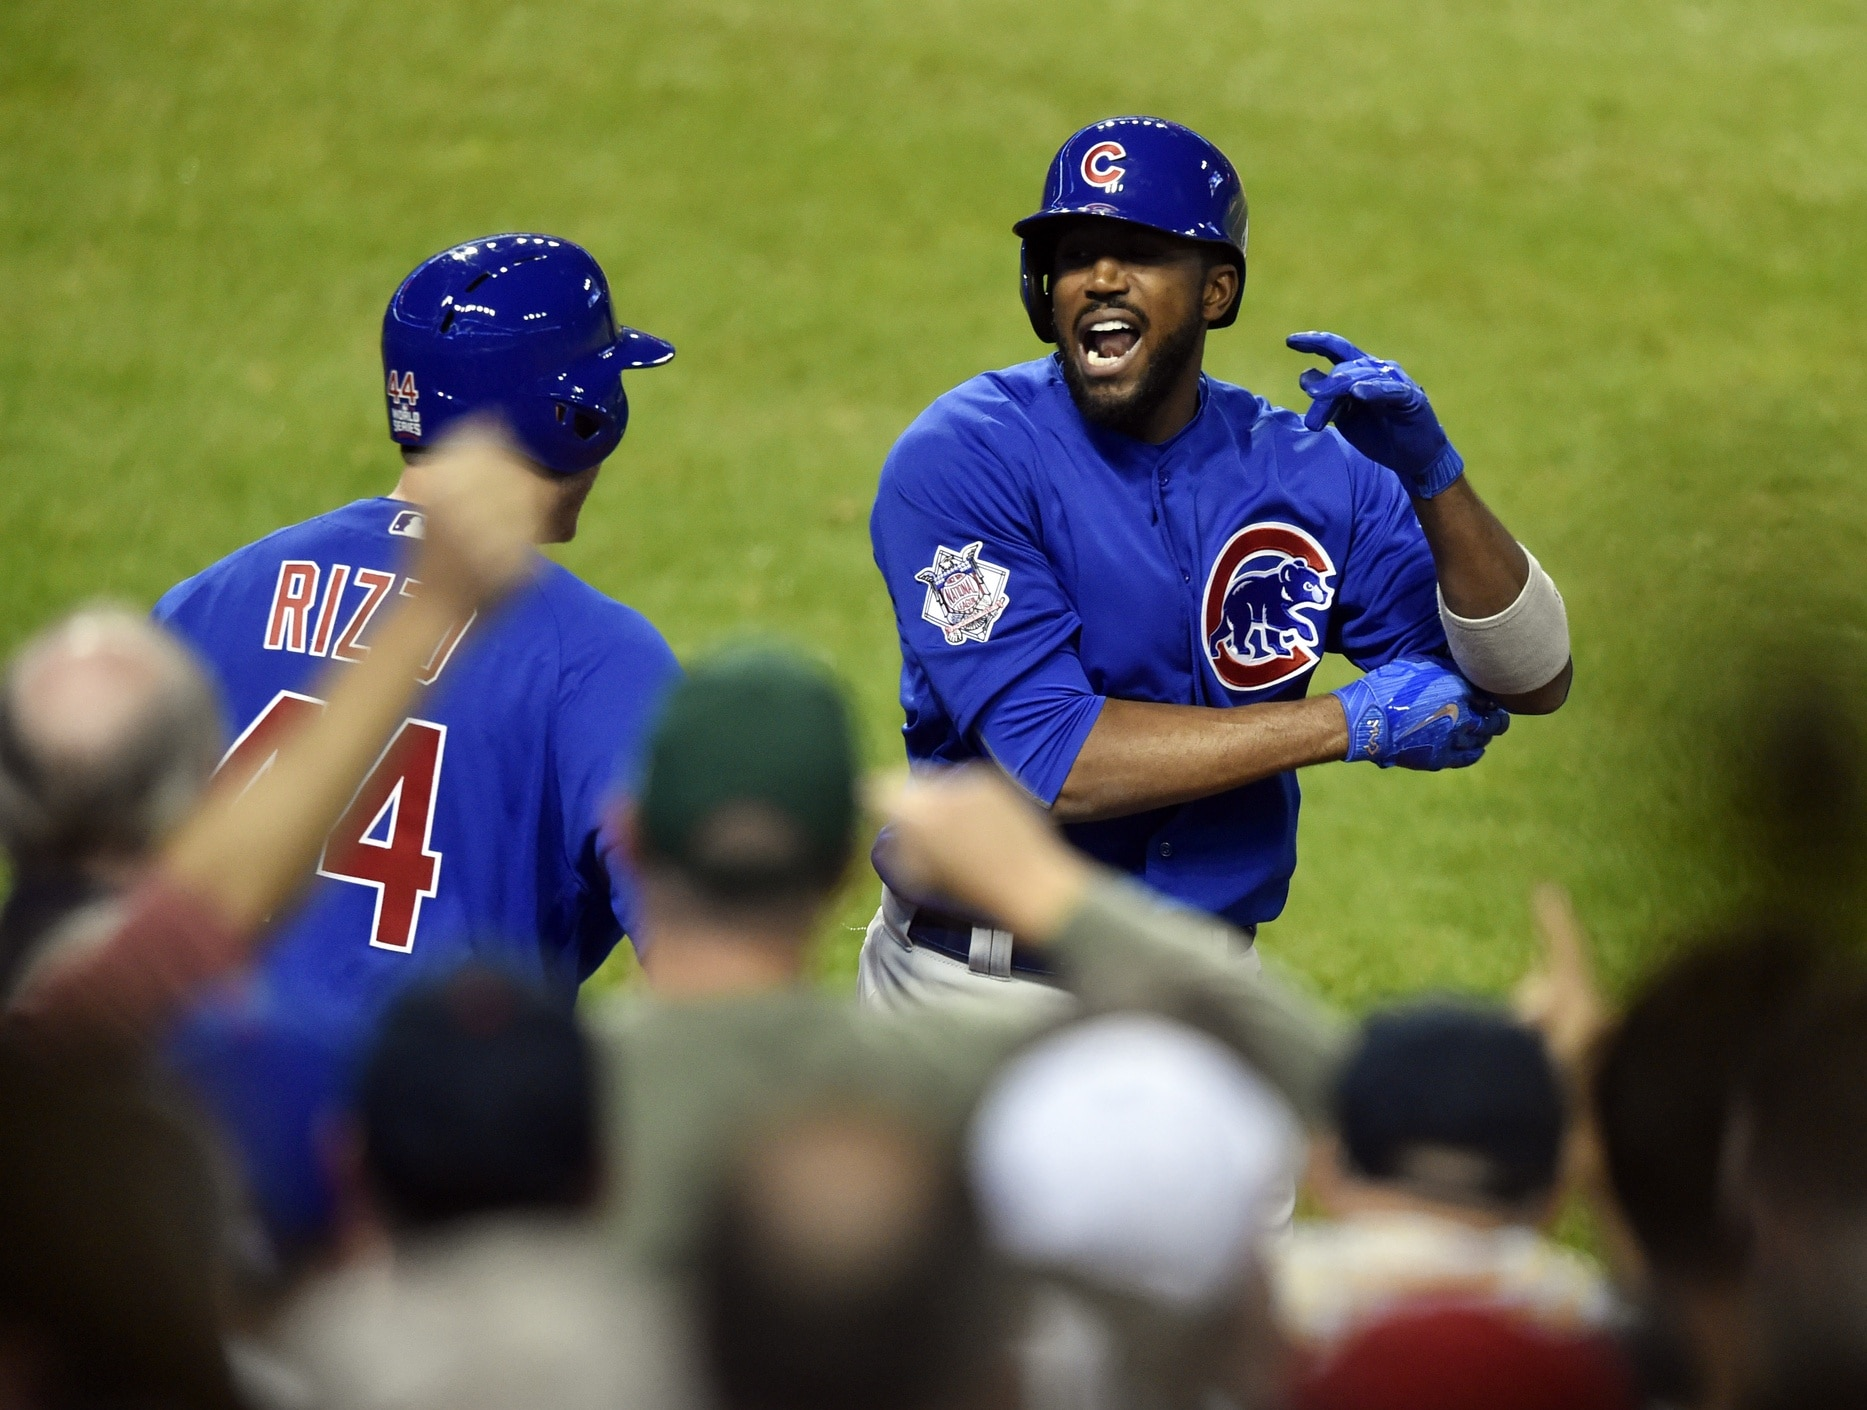 big sale c77aa 749de Dexter Fowler gets World Series ring from Cubs, promptly ...